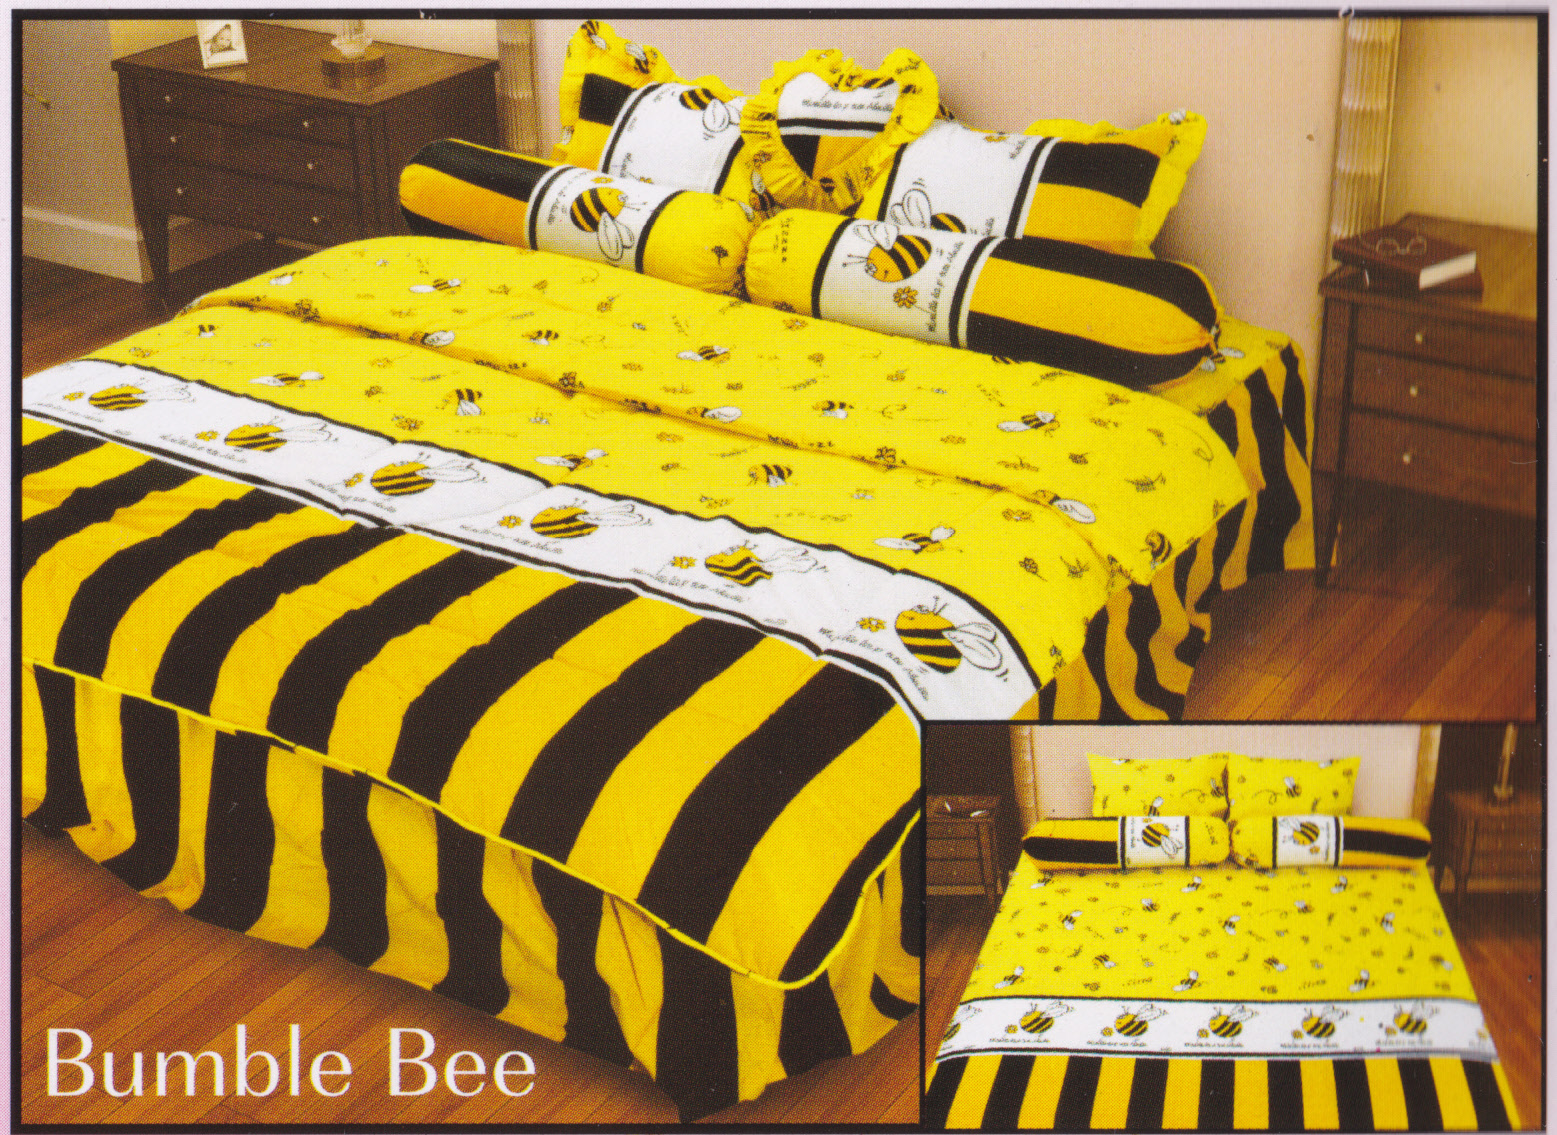 Sprei Belladona Bumble Bee Toko Online Bed Cover Murah Jual